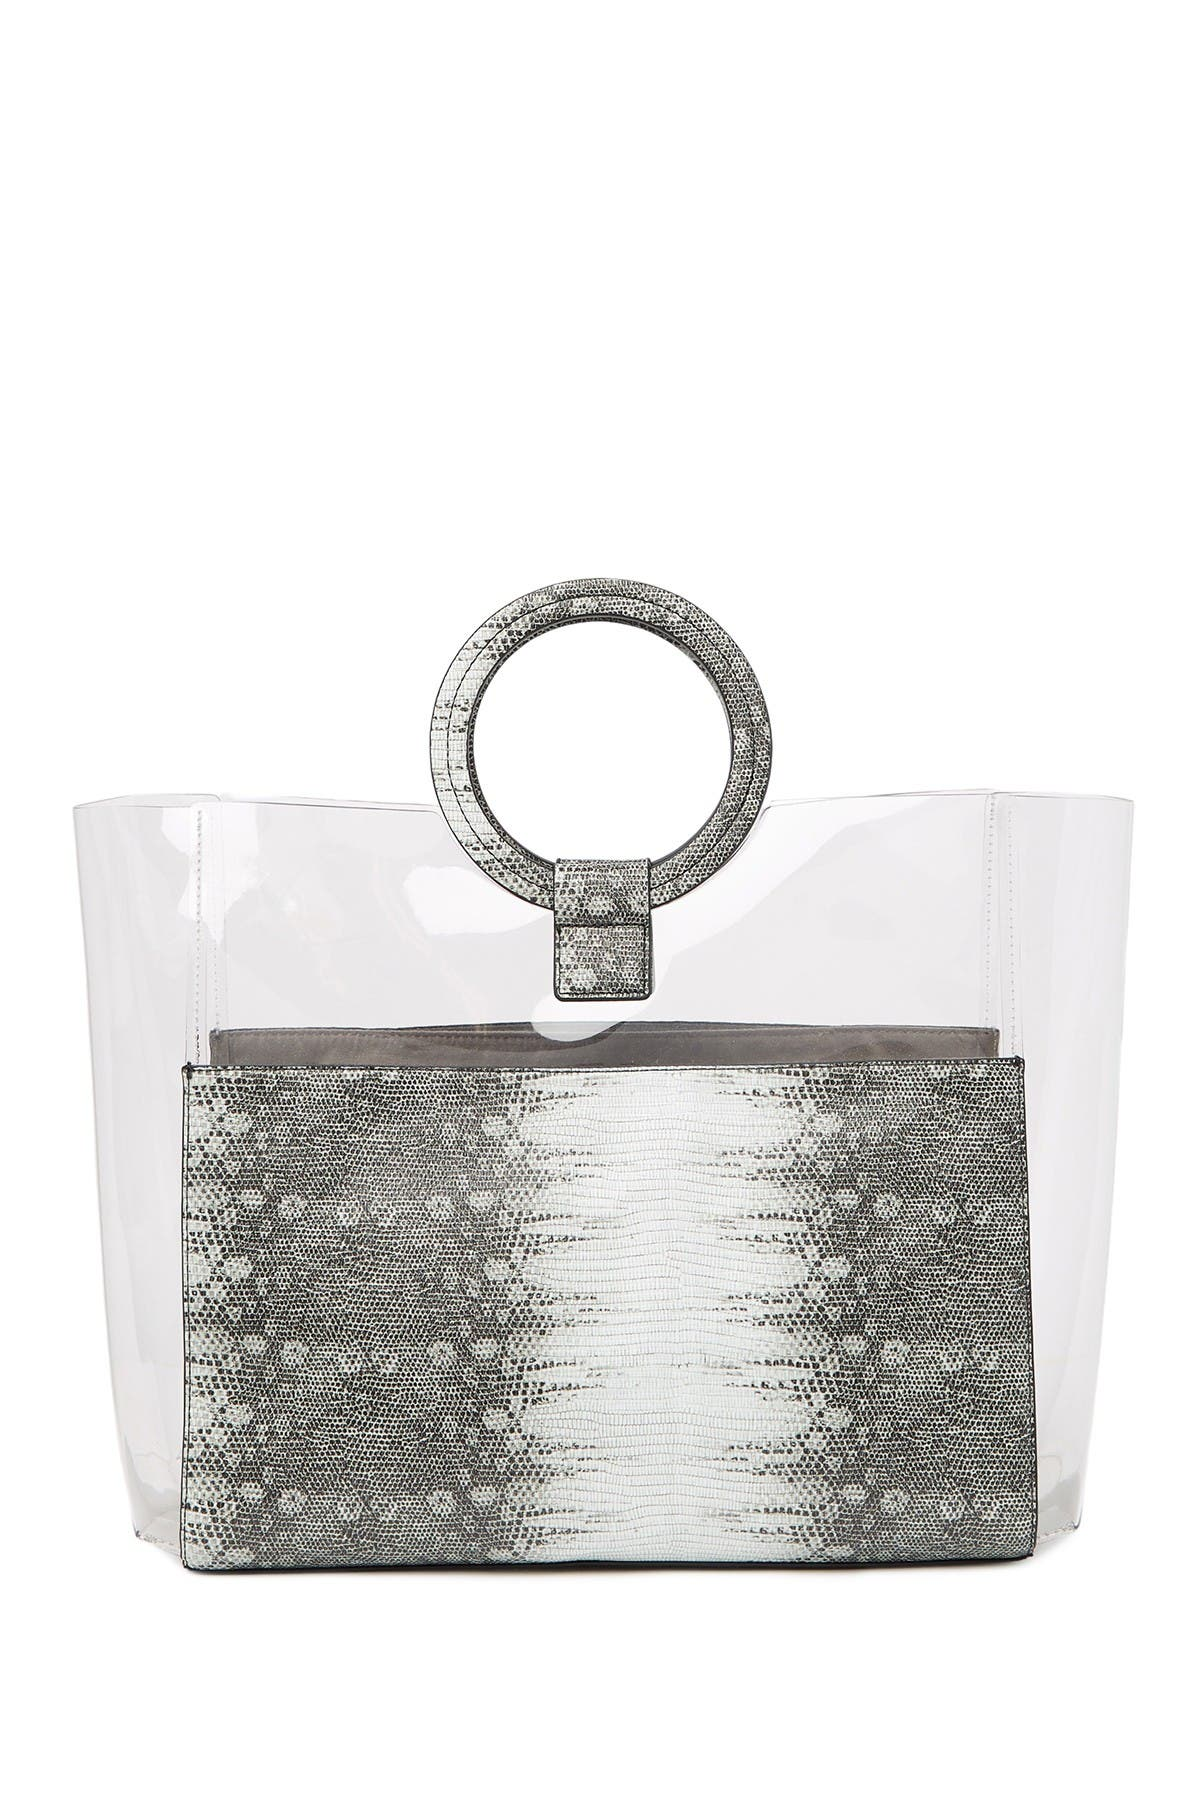 Image of Vince Camuto Clea Faux Leather Tote